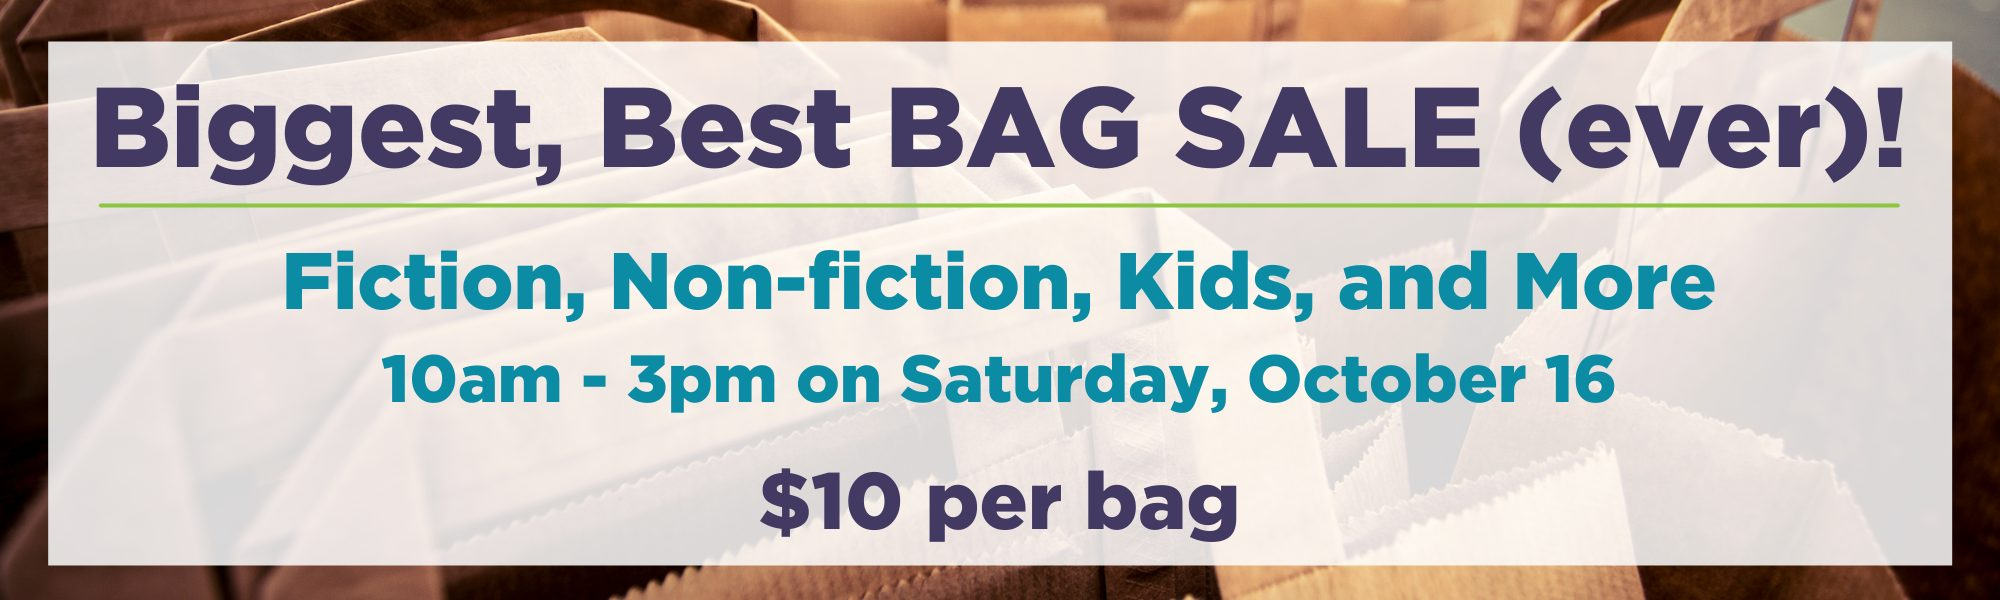 Biggest, Best Bag Sale (ever)! Fiction, Non-fiction, Kids, and more. 10am-3pm on Saturday, October 16. $10 per bag.